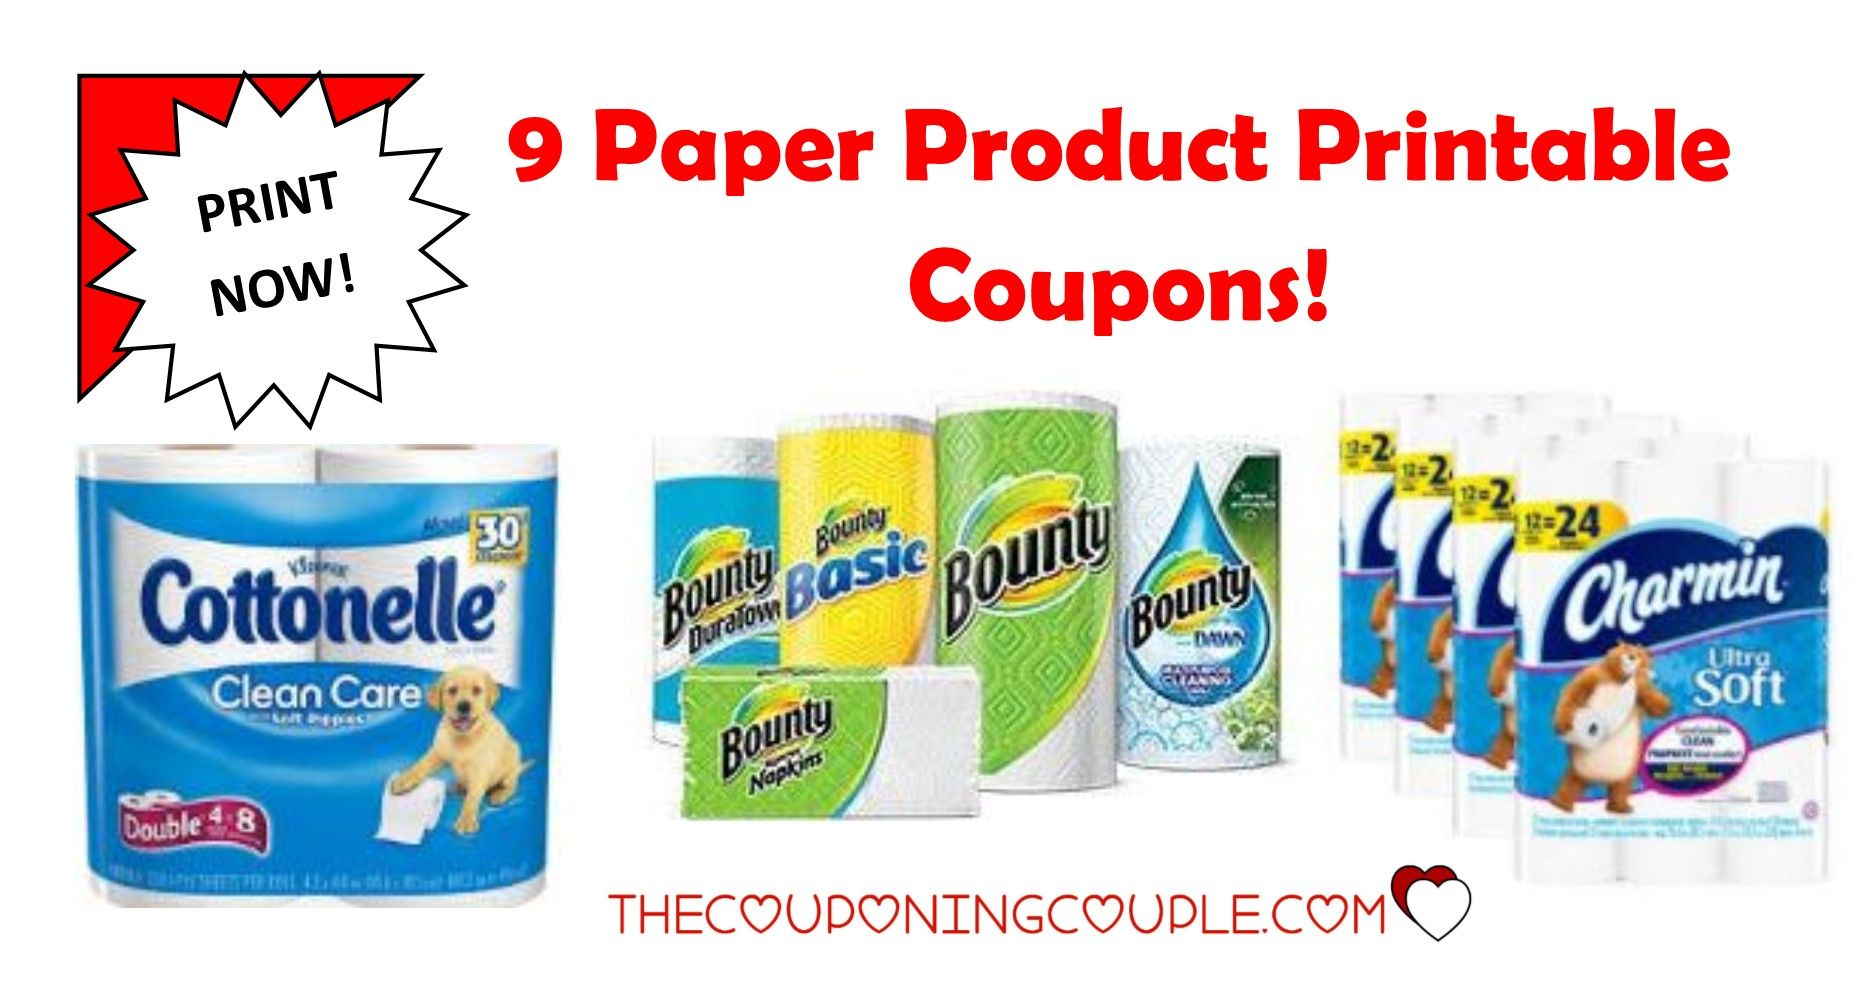 13 paper product printable coupons ~ bounty, charmin & more